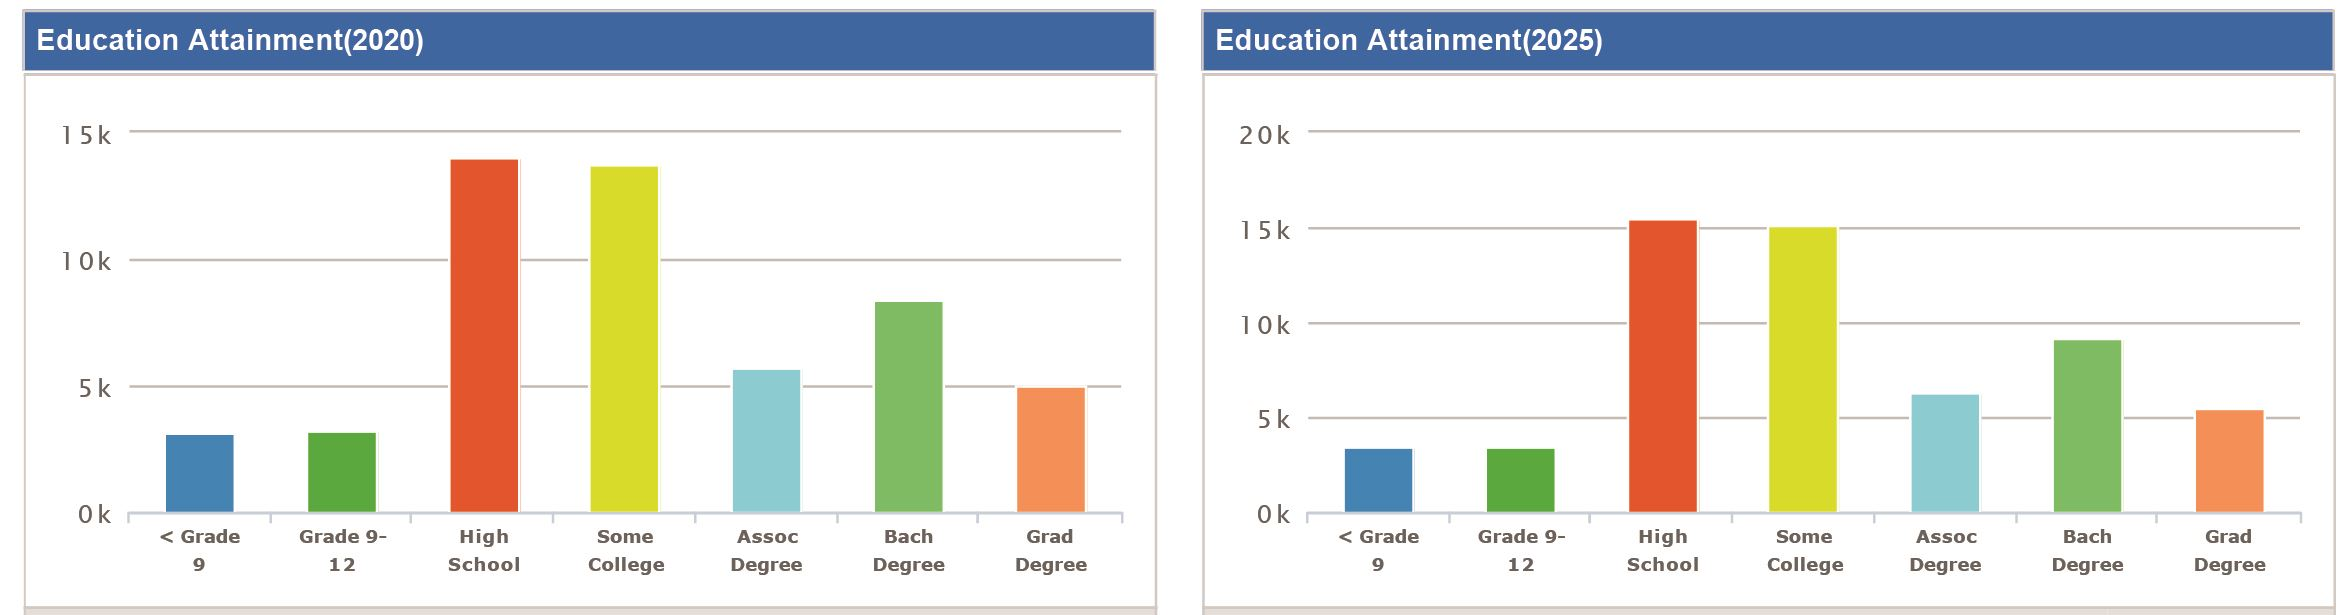 Educational Attainment 2020